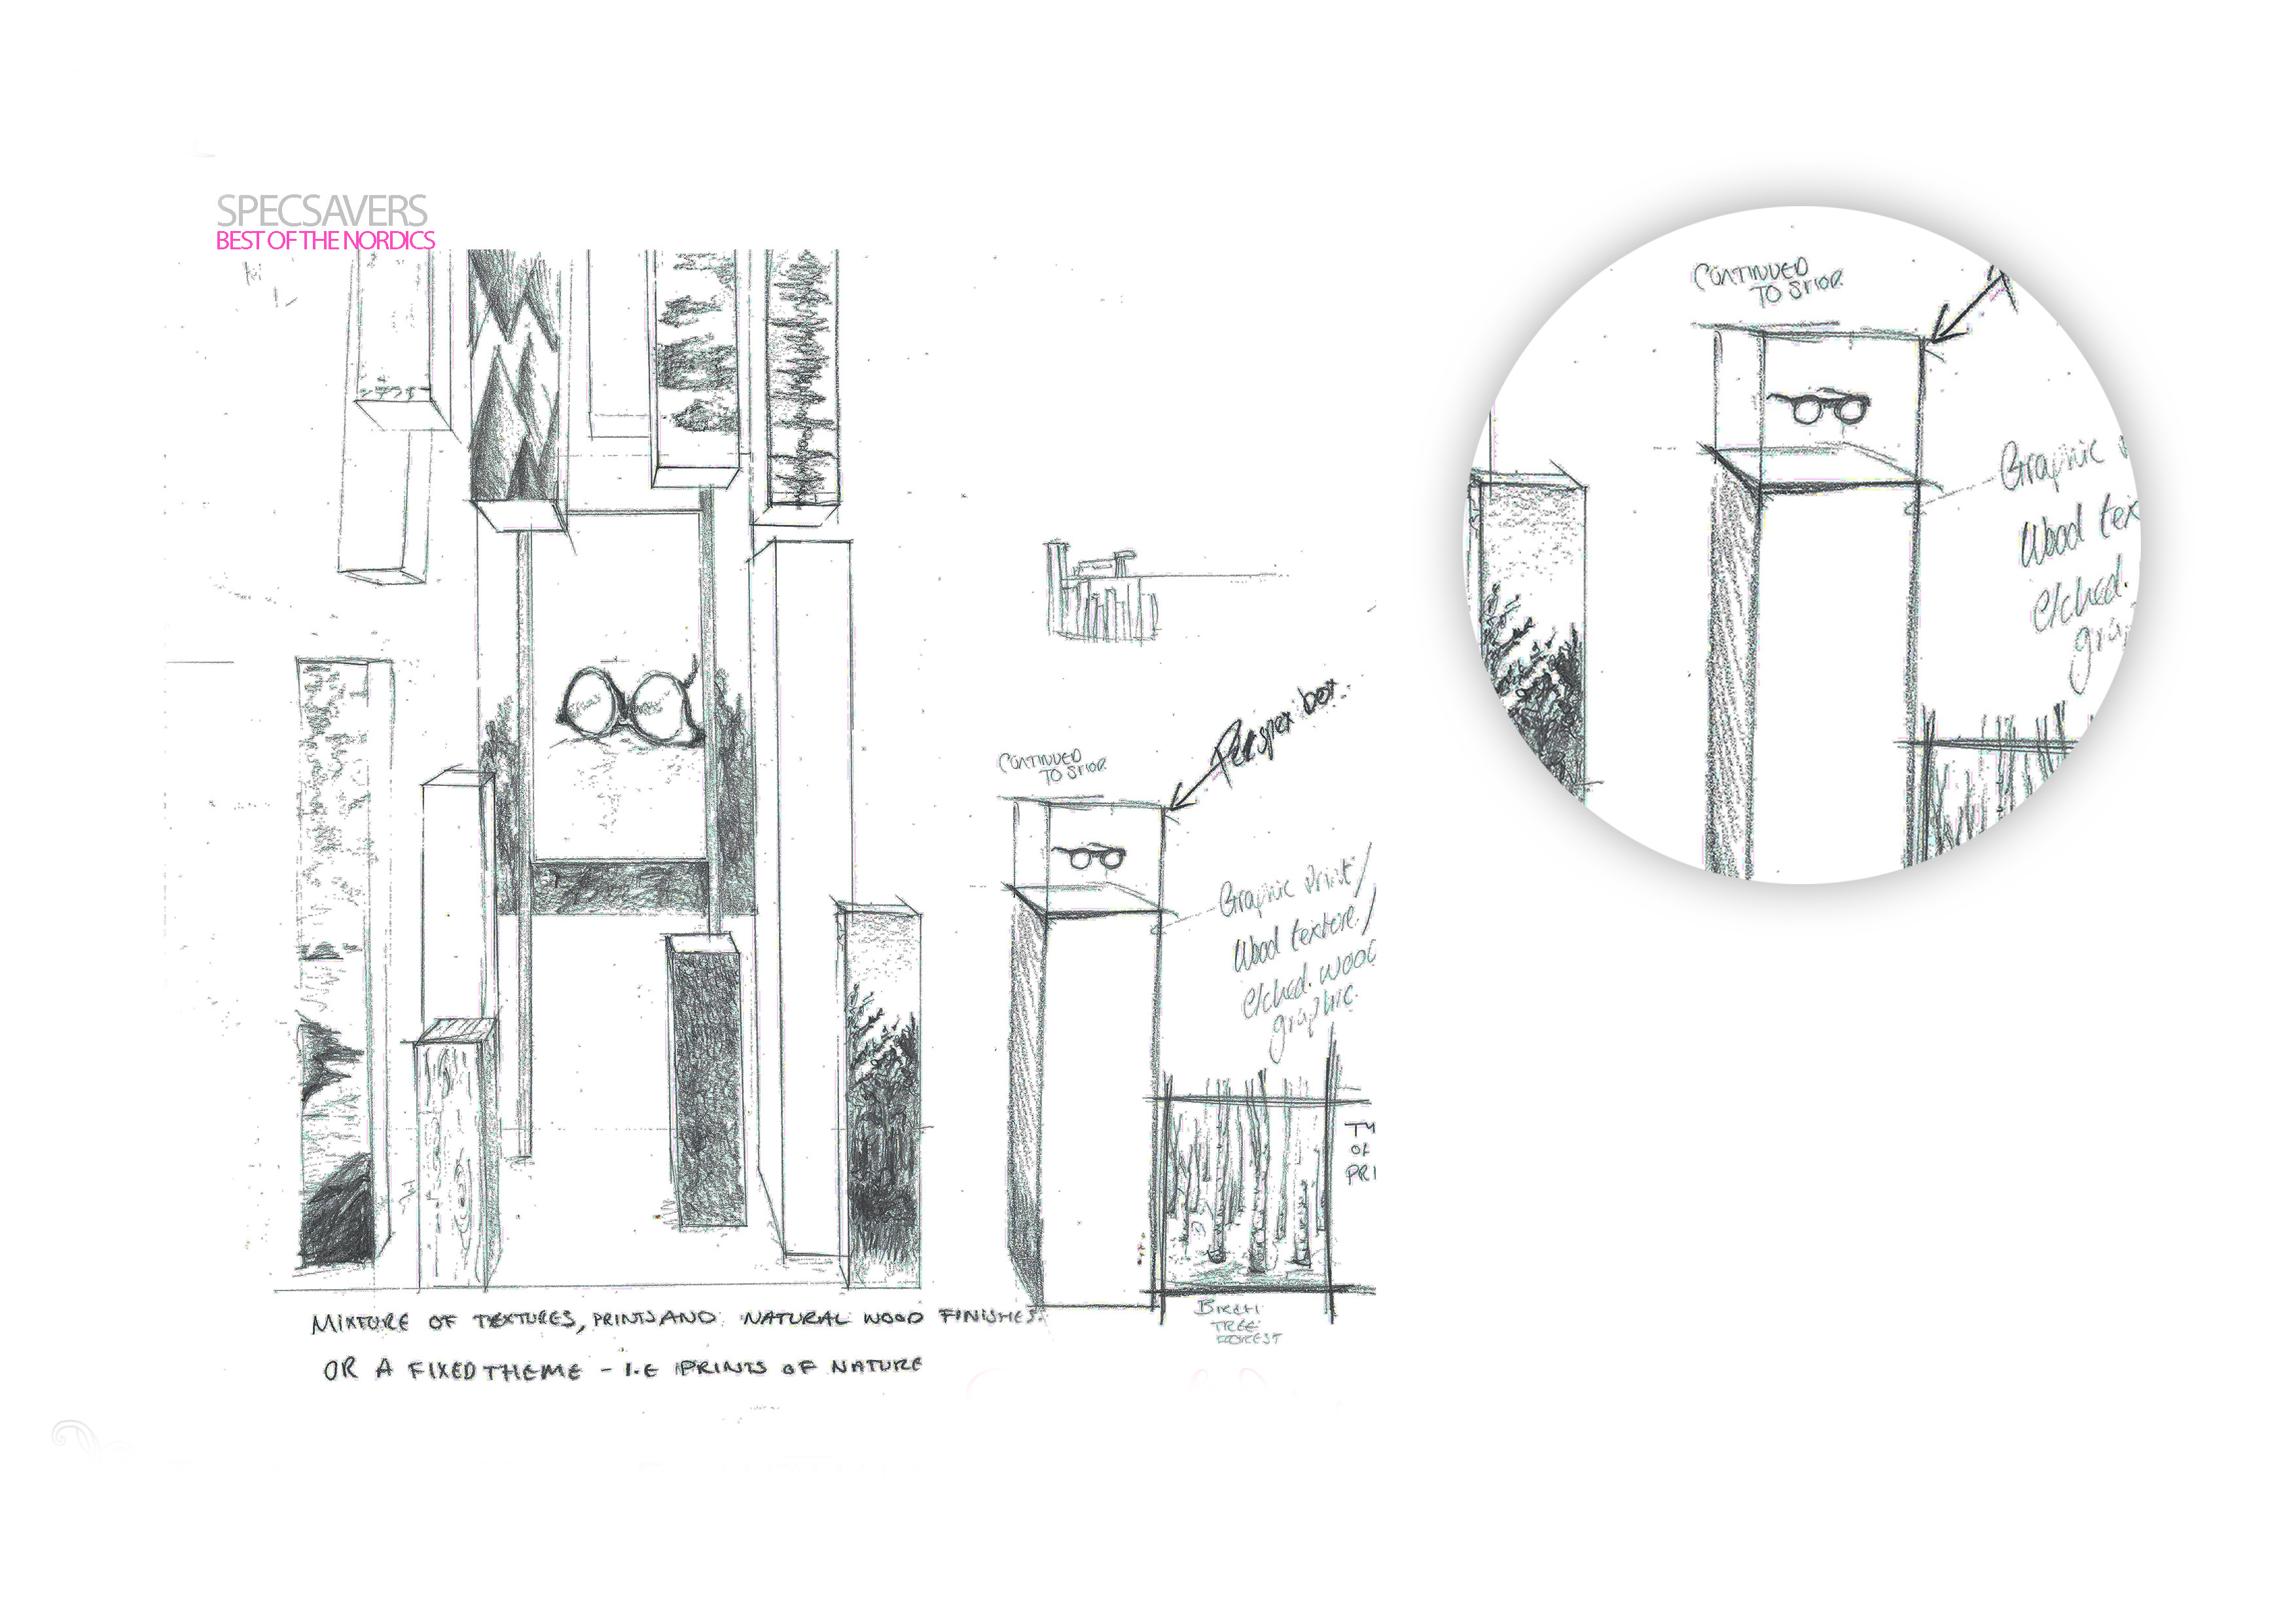 Initial sketches by Prop Studios to show the designs of the plinths